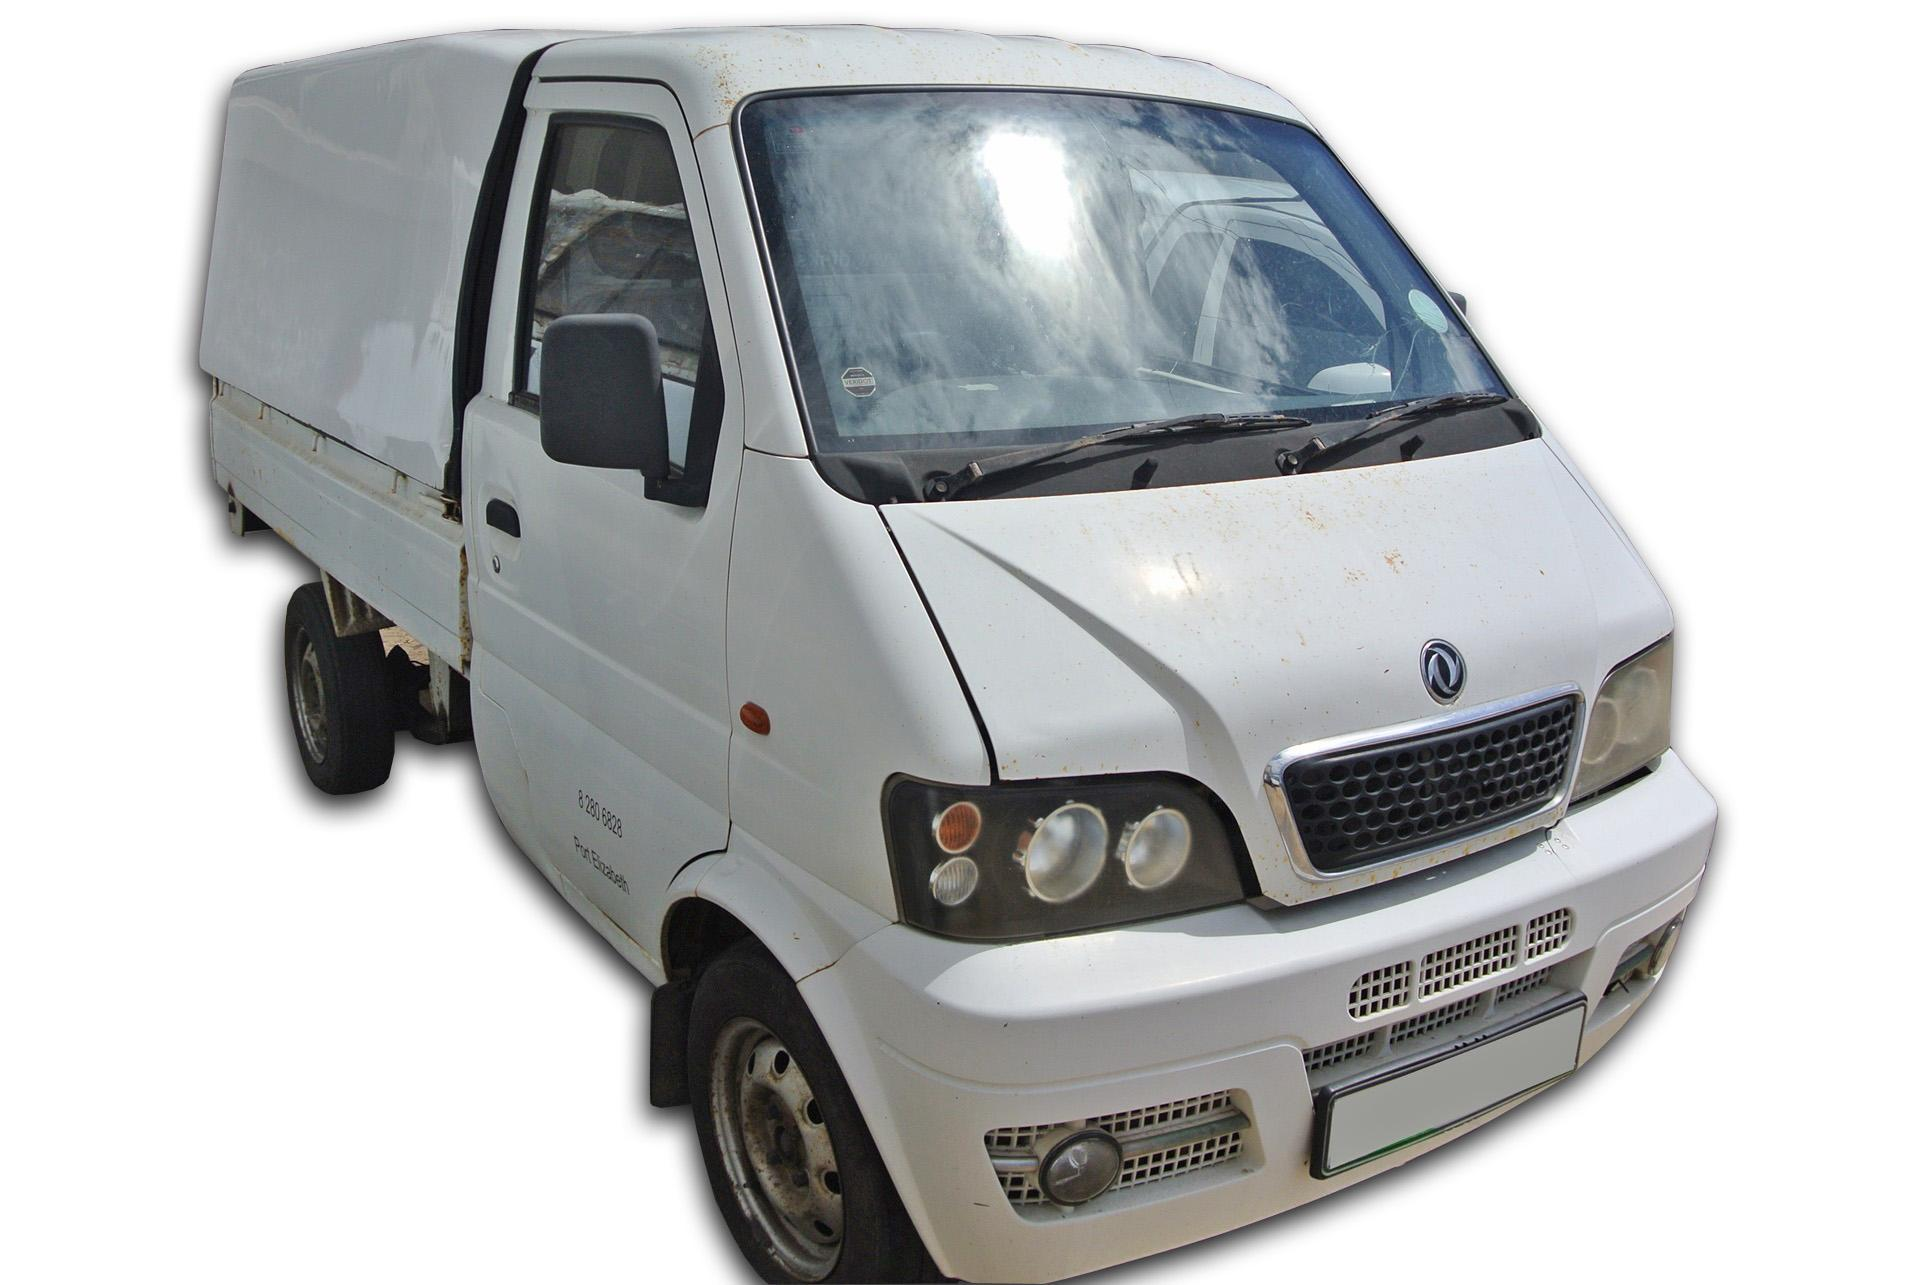 Dongfeng DFSK1.3SCAB P-UP DFSK 1300 P/U S/C